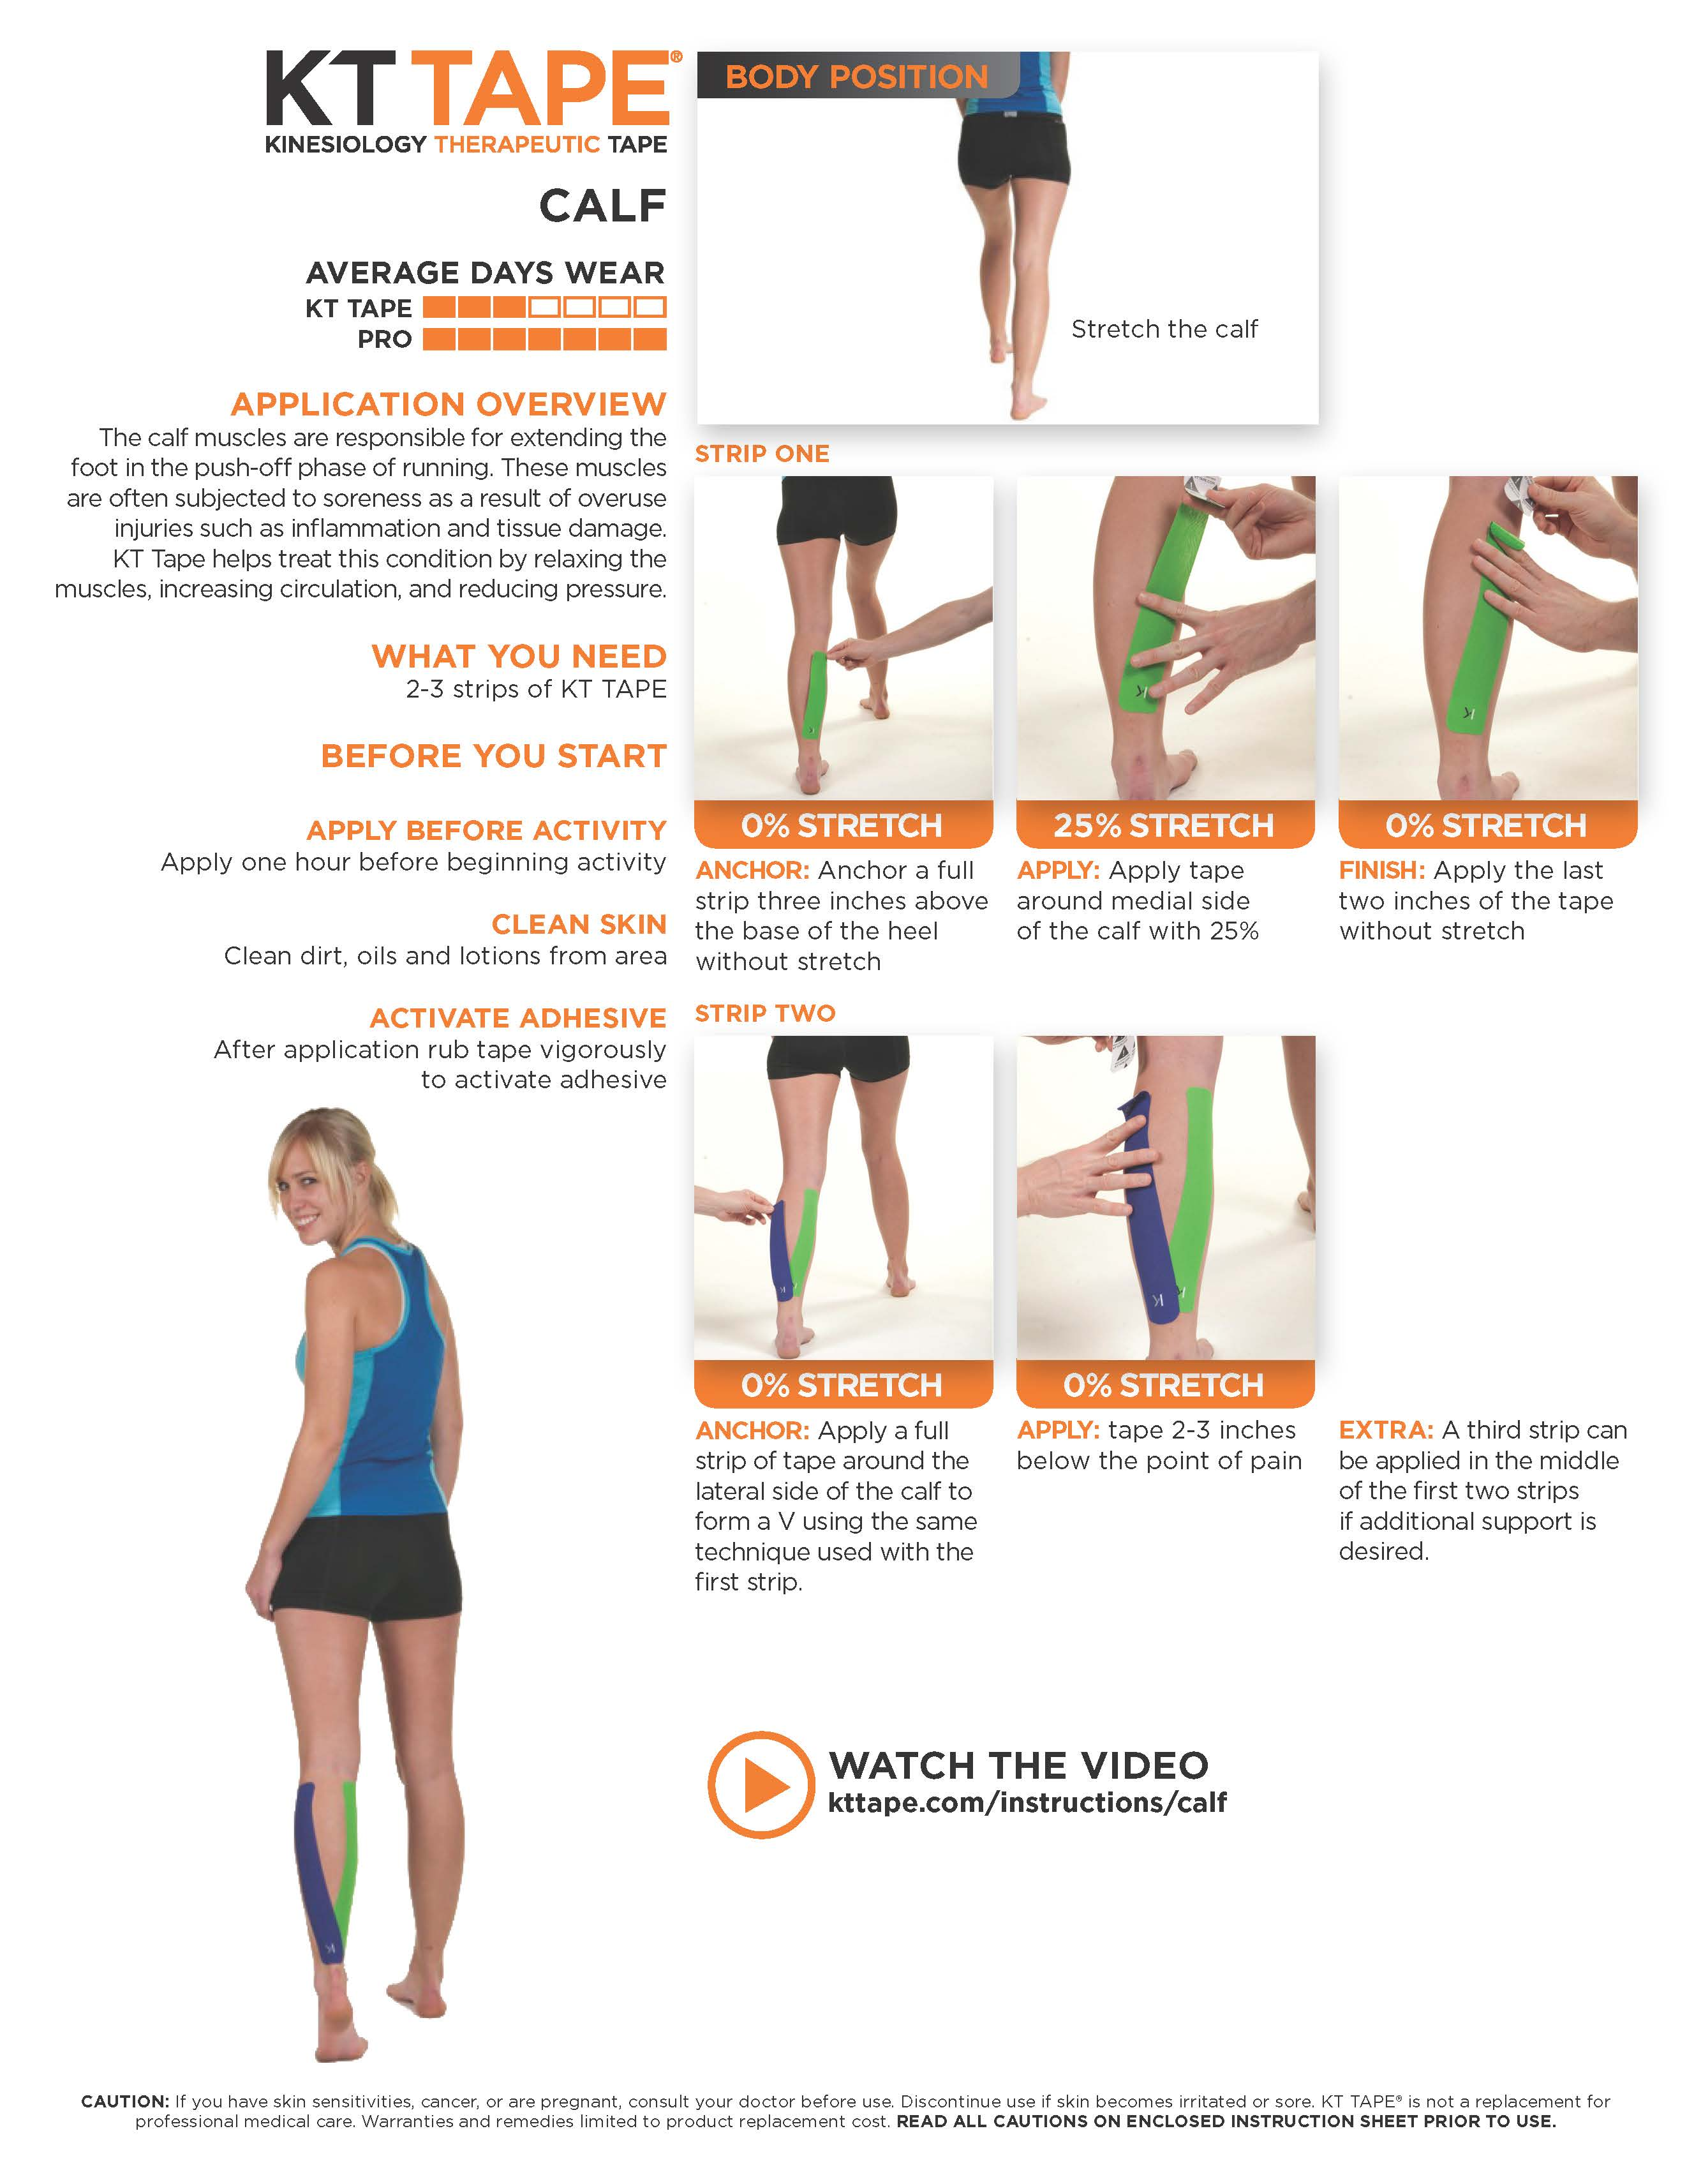 KT-Tape-Instructions_Calf_Pain